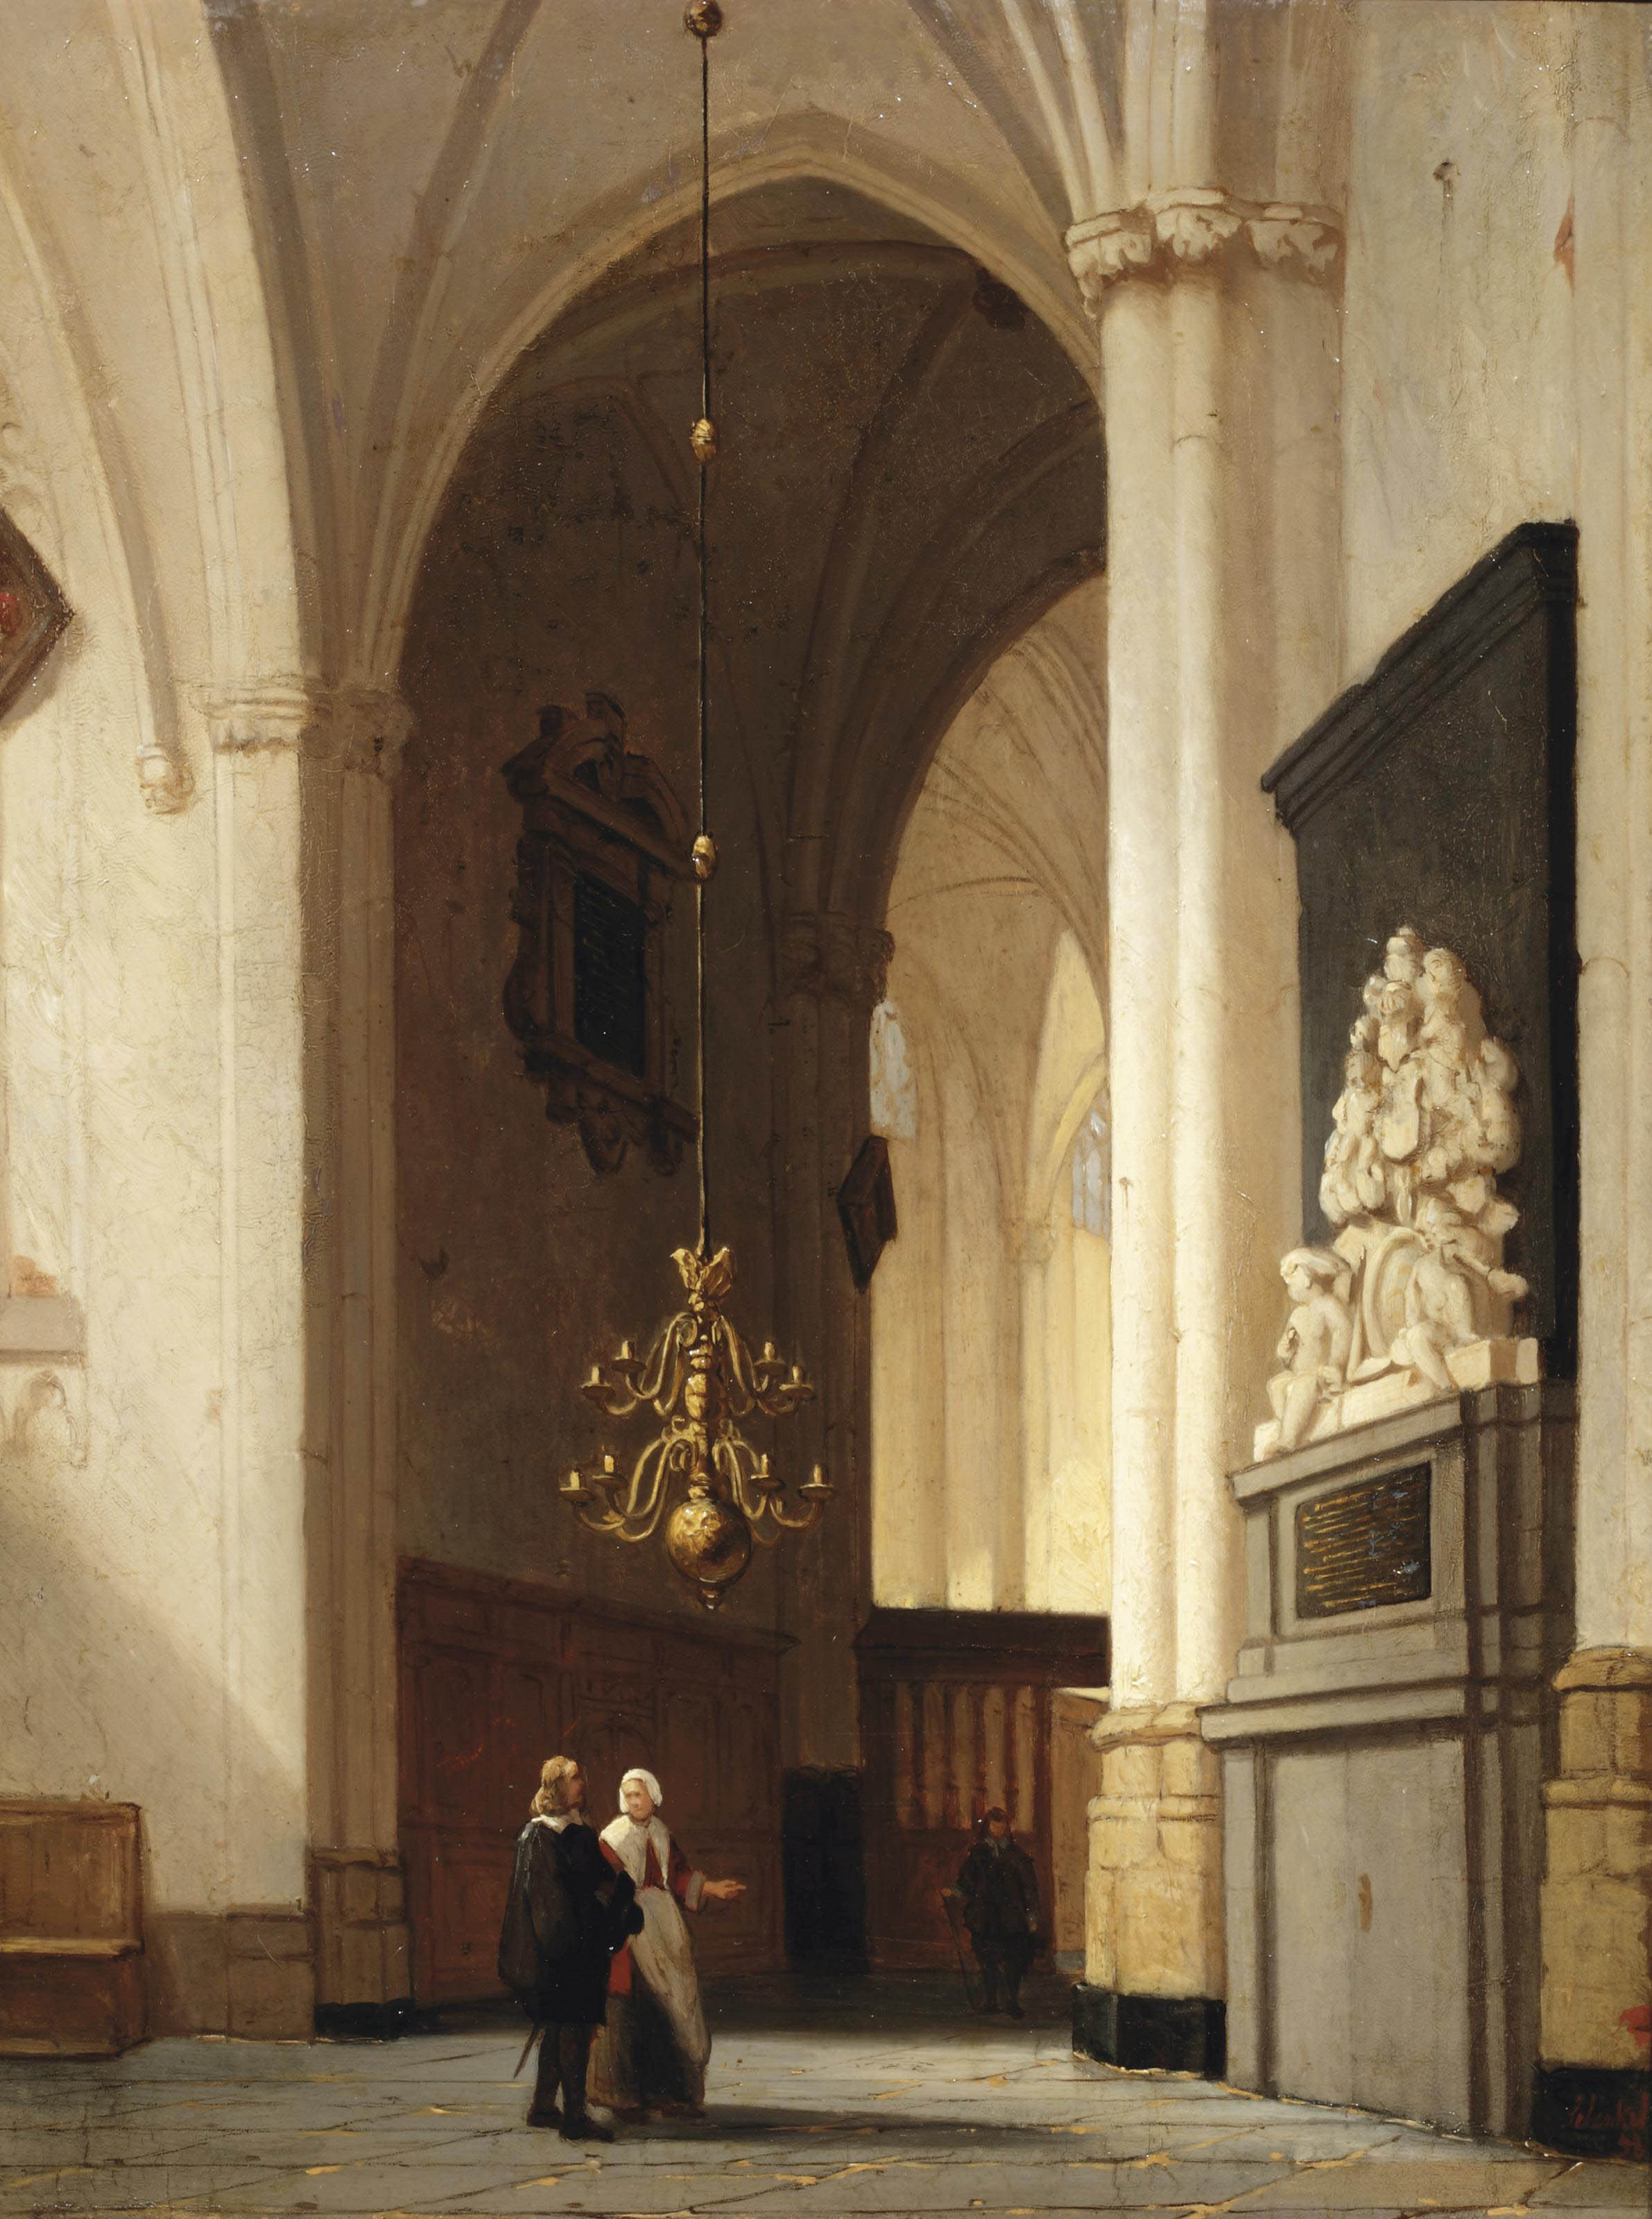 Figures in a church interior